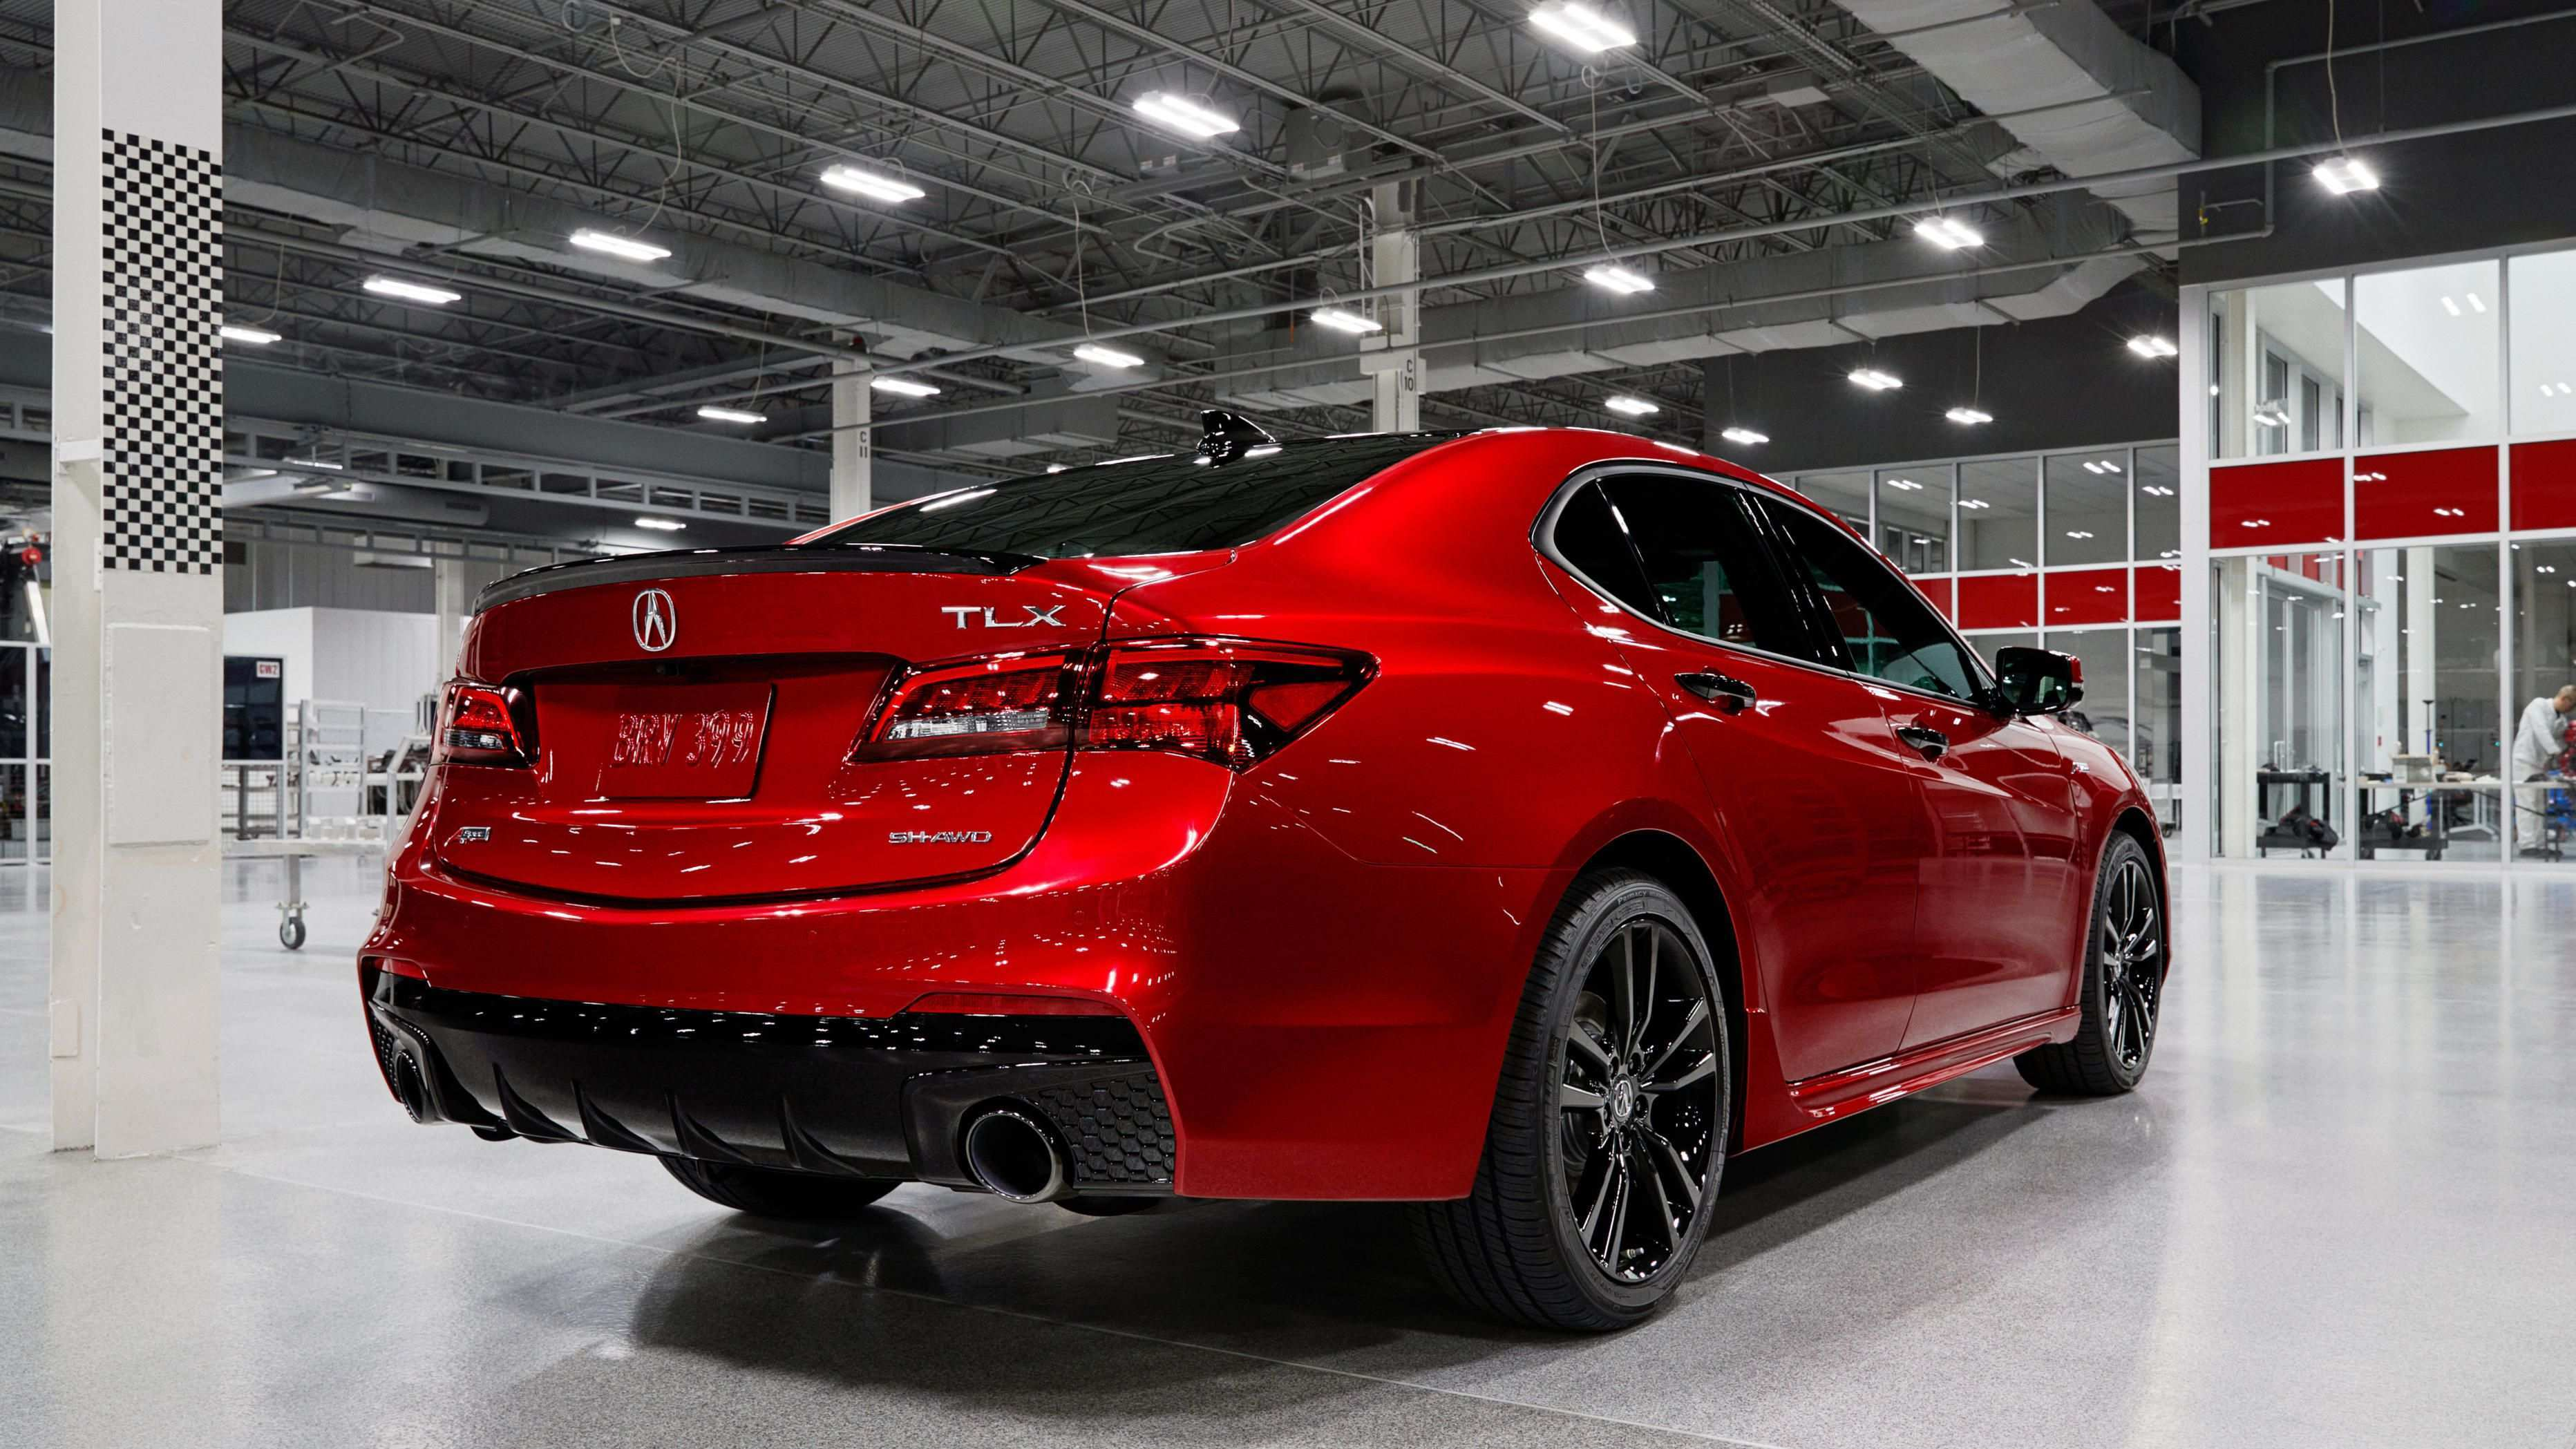 80 A 2020 Acura TLX Exterior And Interior